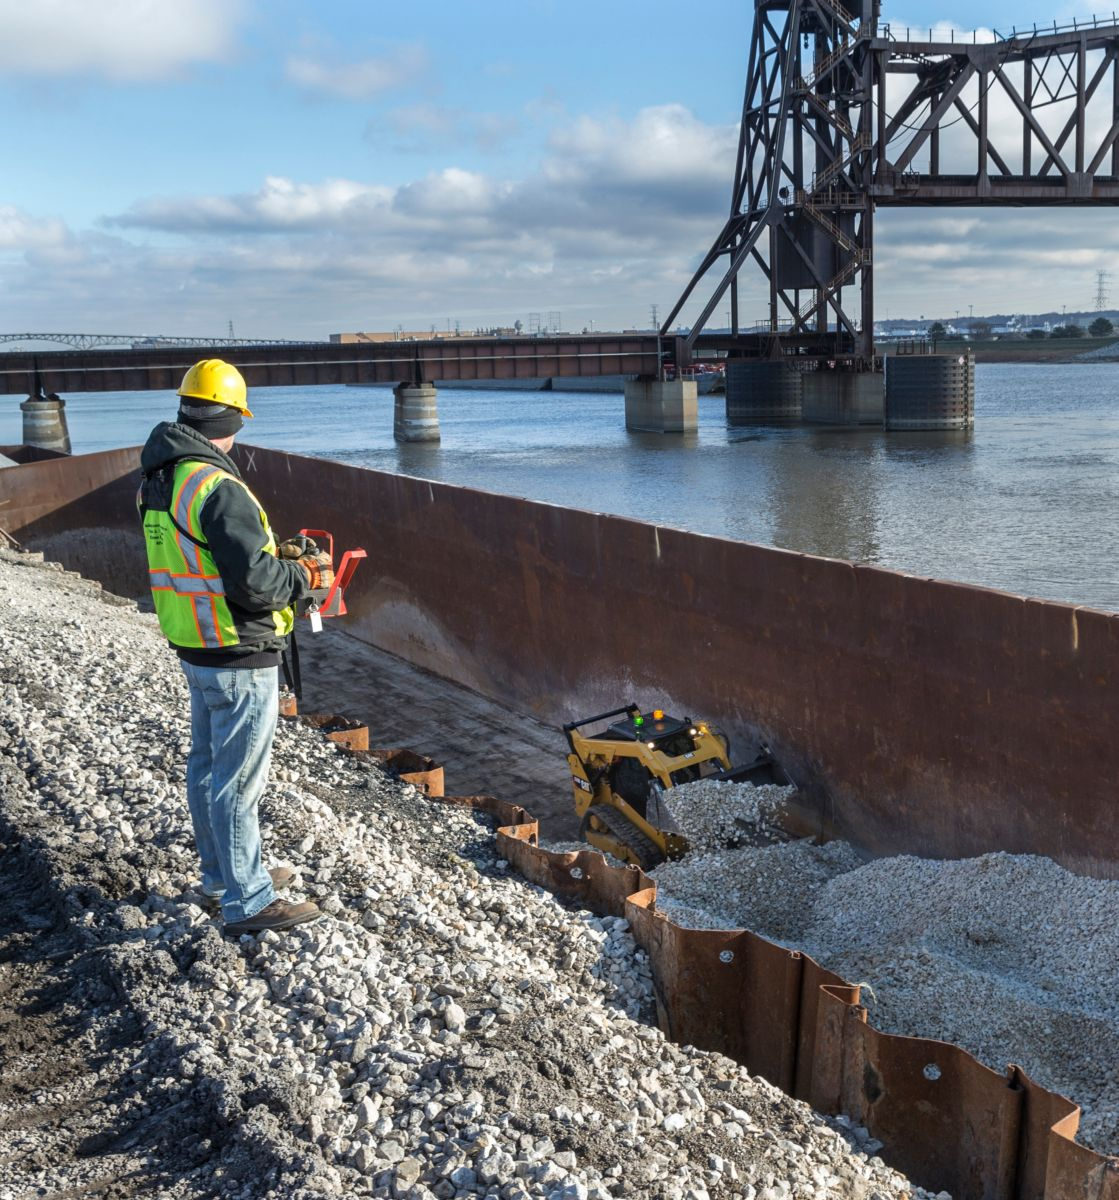 Applications such as paving, demolition, trenching, chemical handling and law enforcement become safer with the RemoteTask™ remote control system.